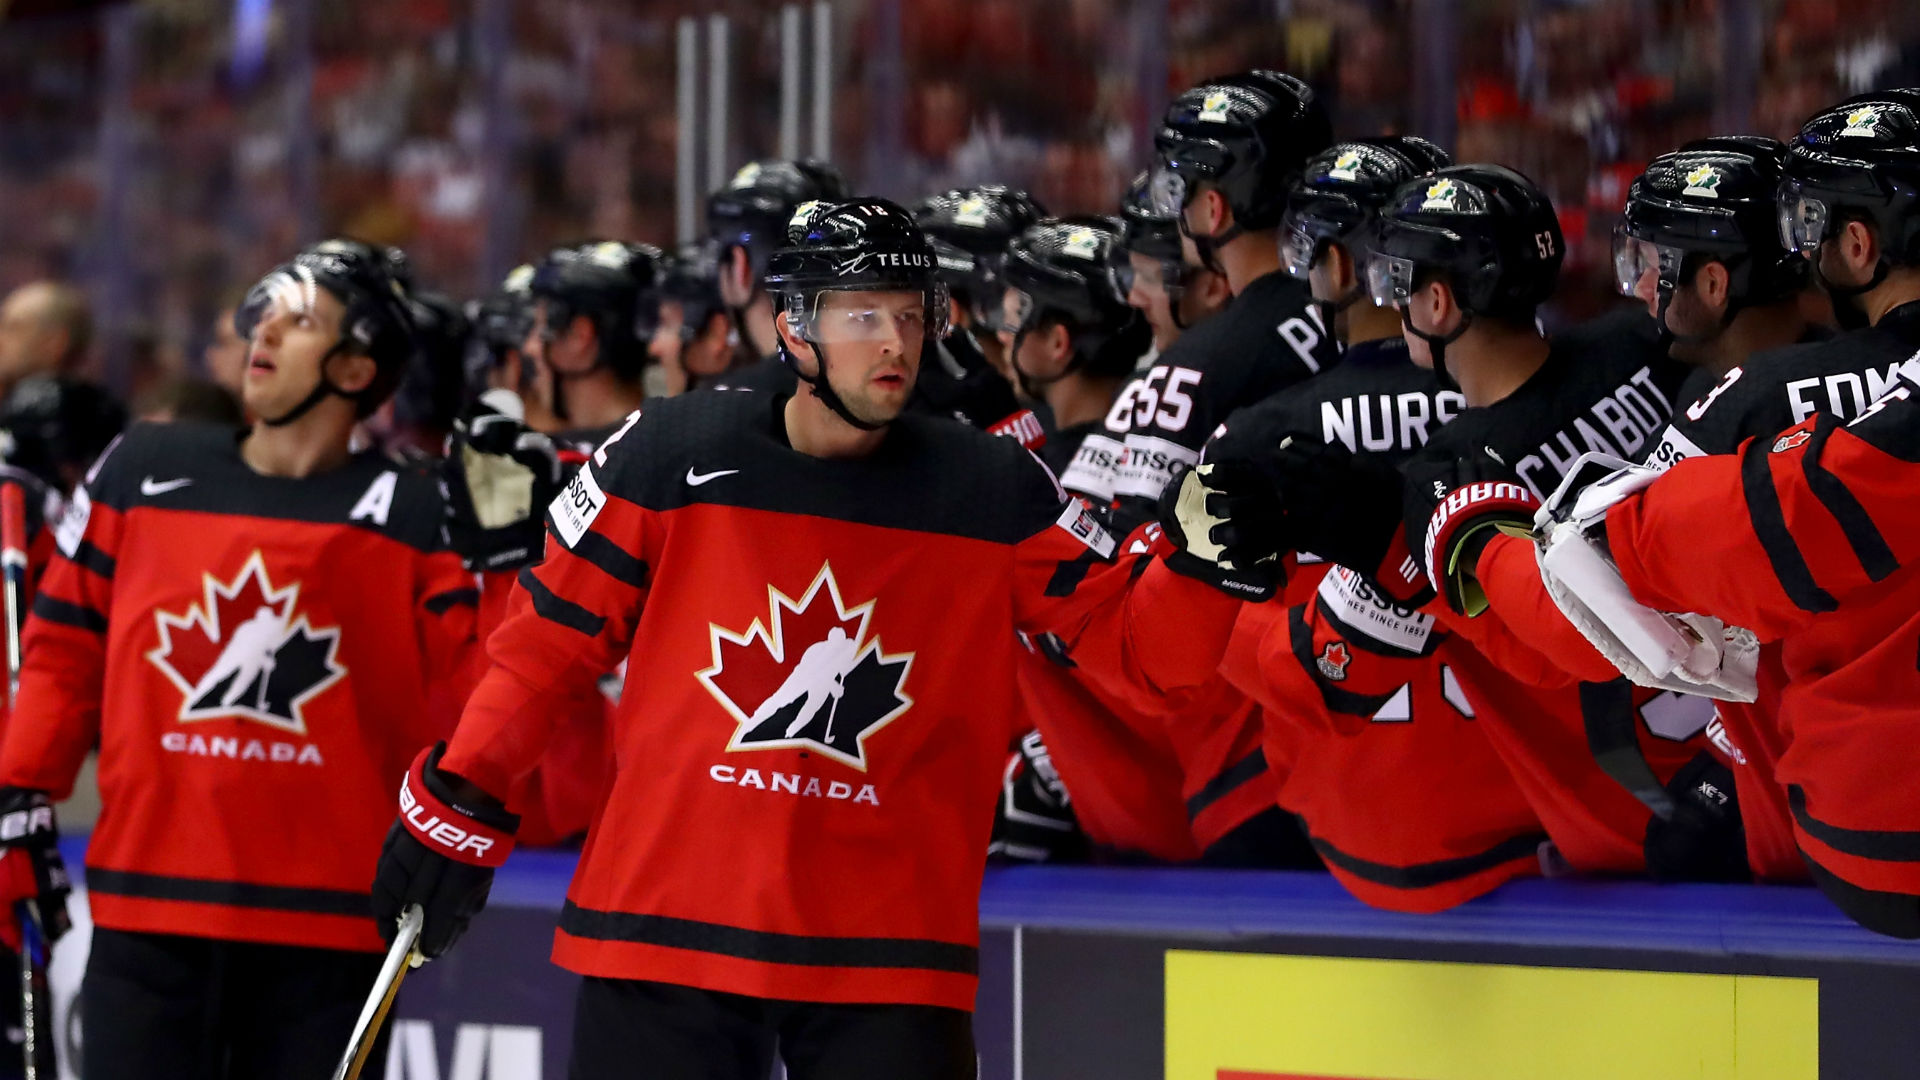 a3330791e99 IIHF World Championship 2018  McDavid leads Canada to 7-1 rout over Denmark